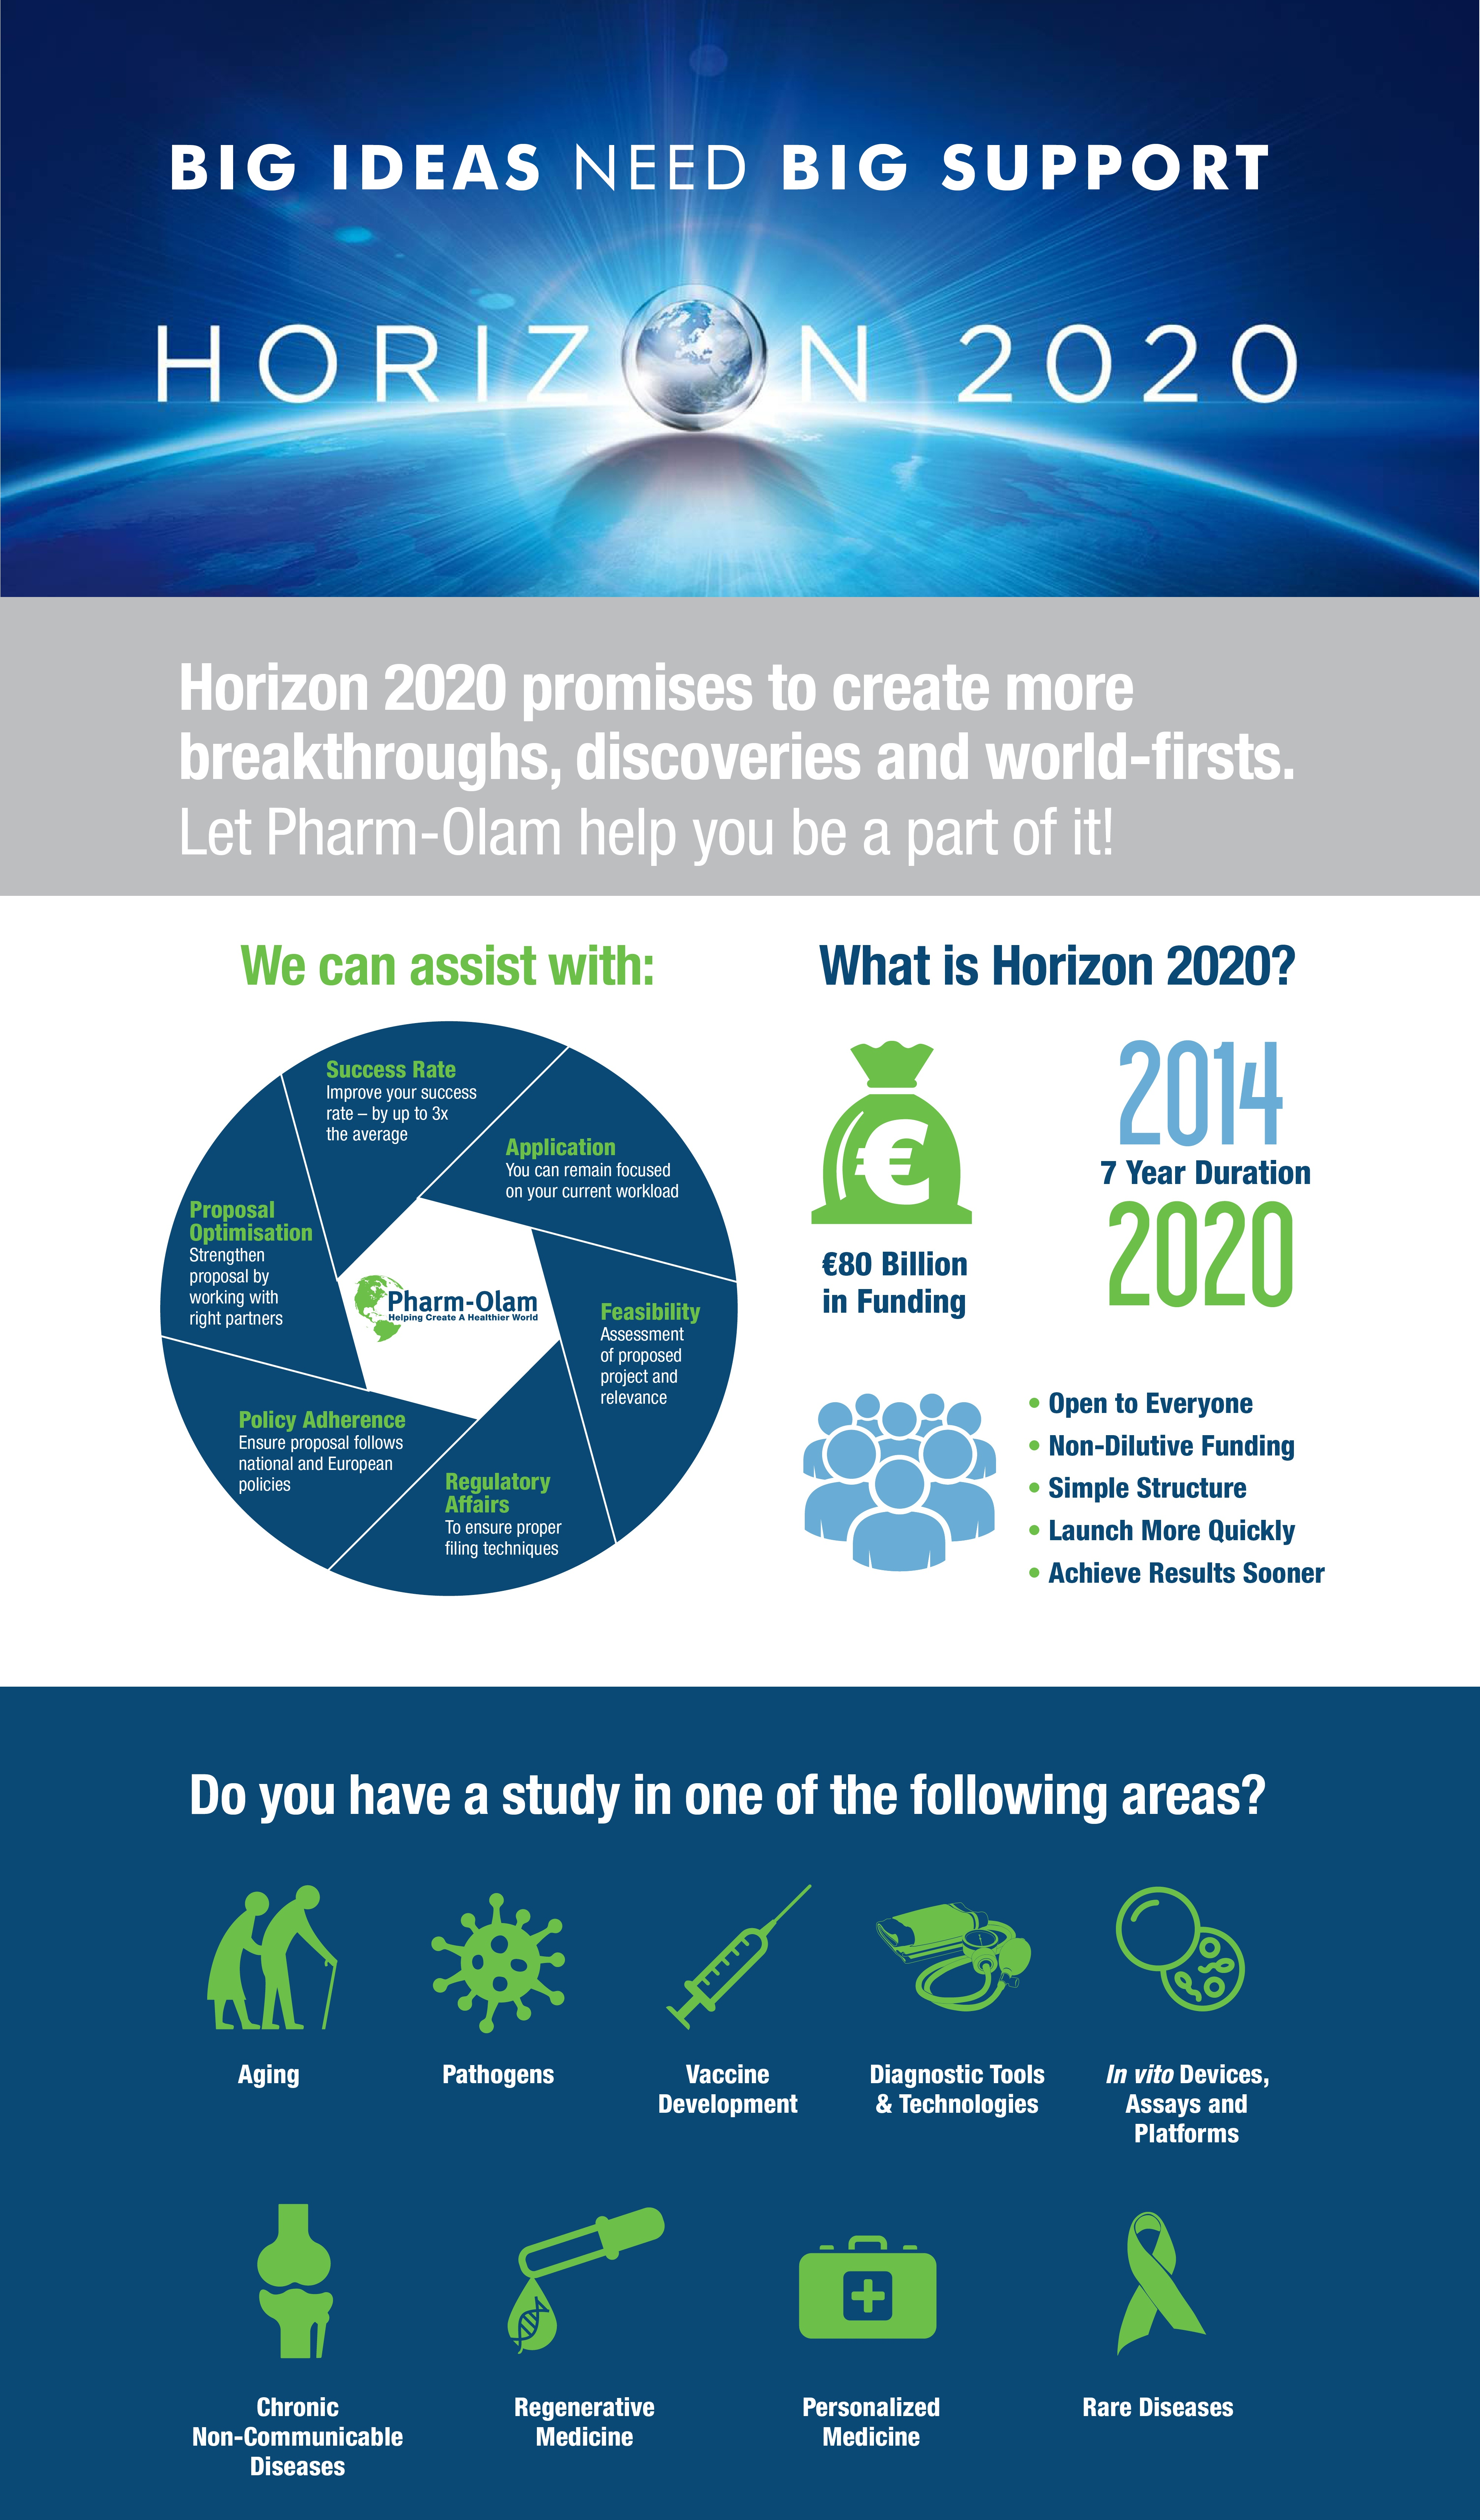 Can the Horizon 2020 programme help fund your next study? Pharm-Olam can help...